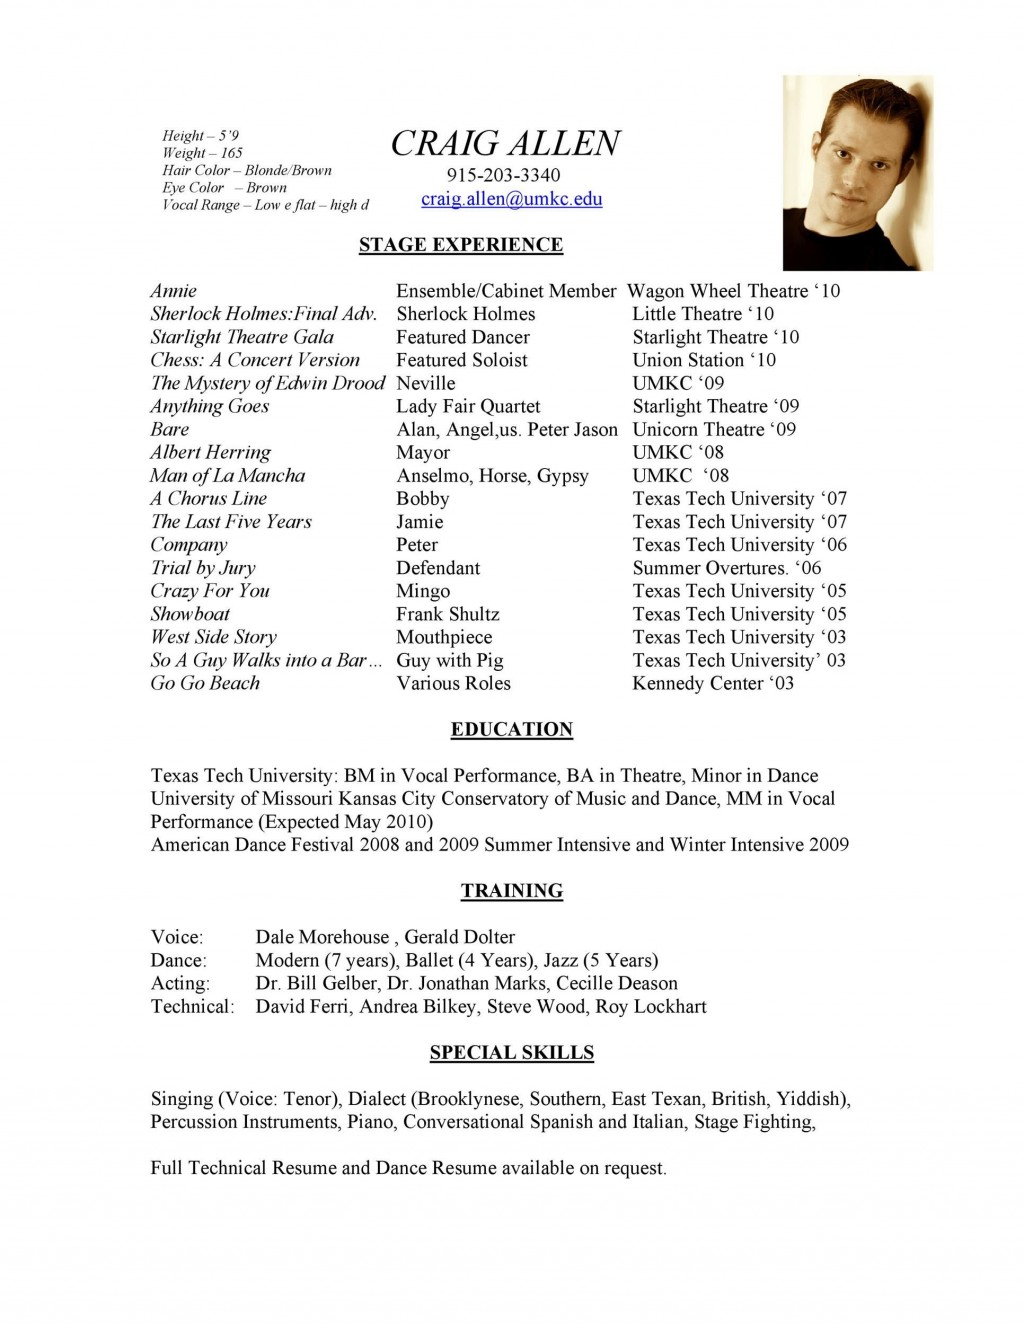 004 Beautiful Technical Theatre Resume Template High Resolution  Google Doc TechLarge